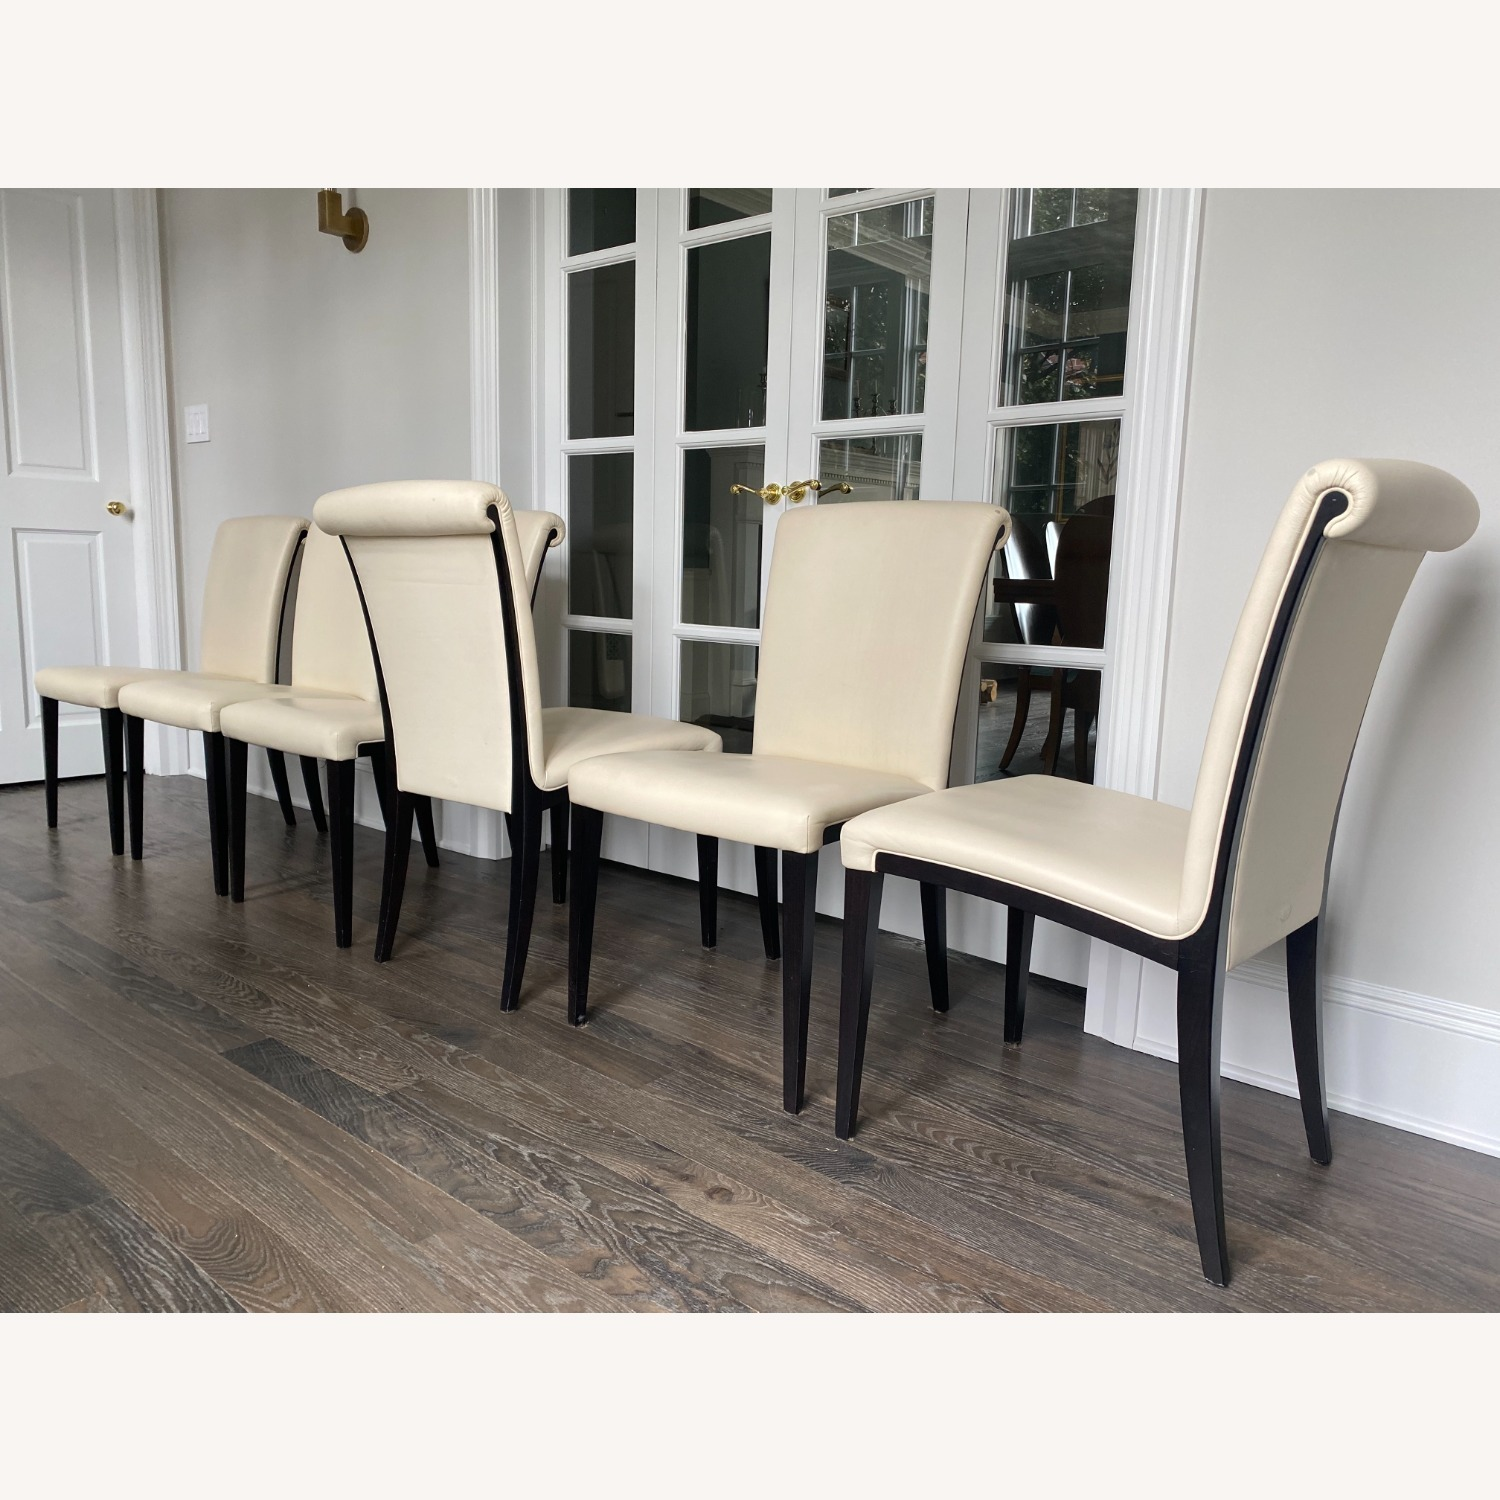 Poltrona Frau set of 6 Leather Dining Chairs - image-3